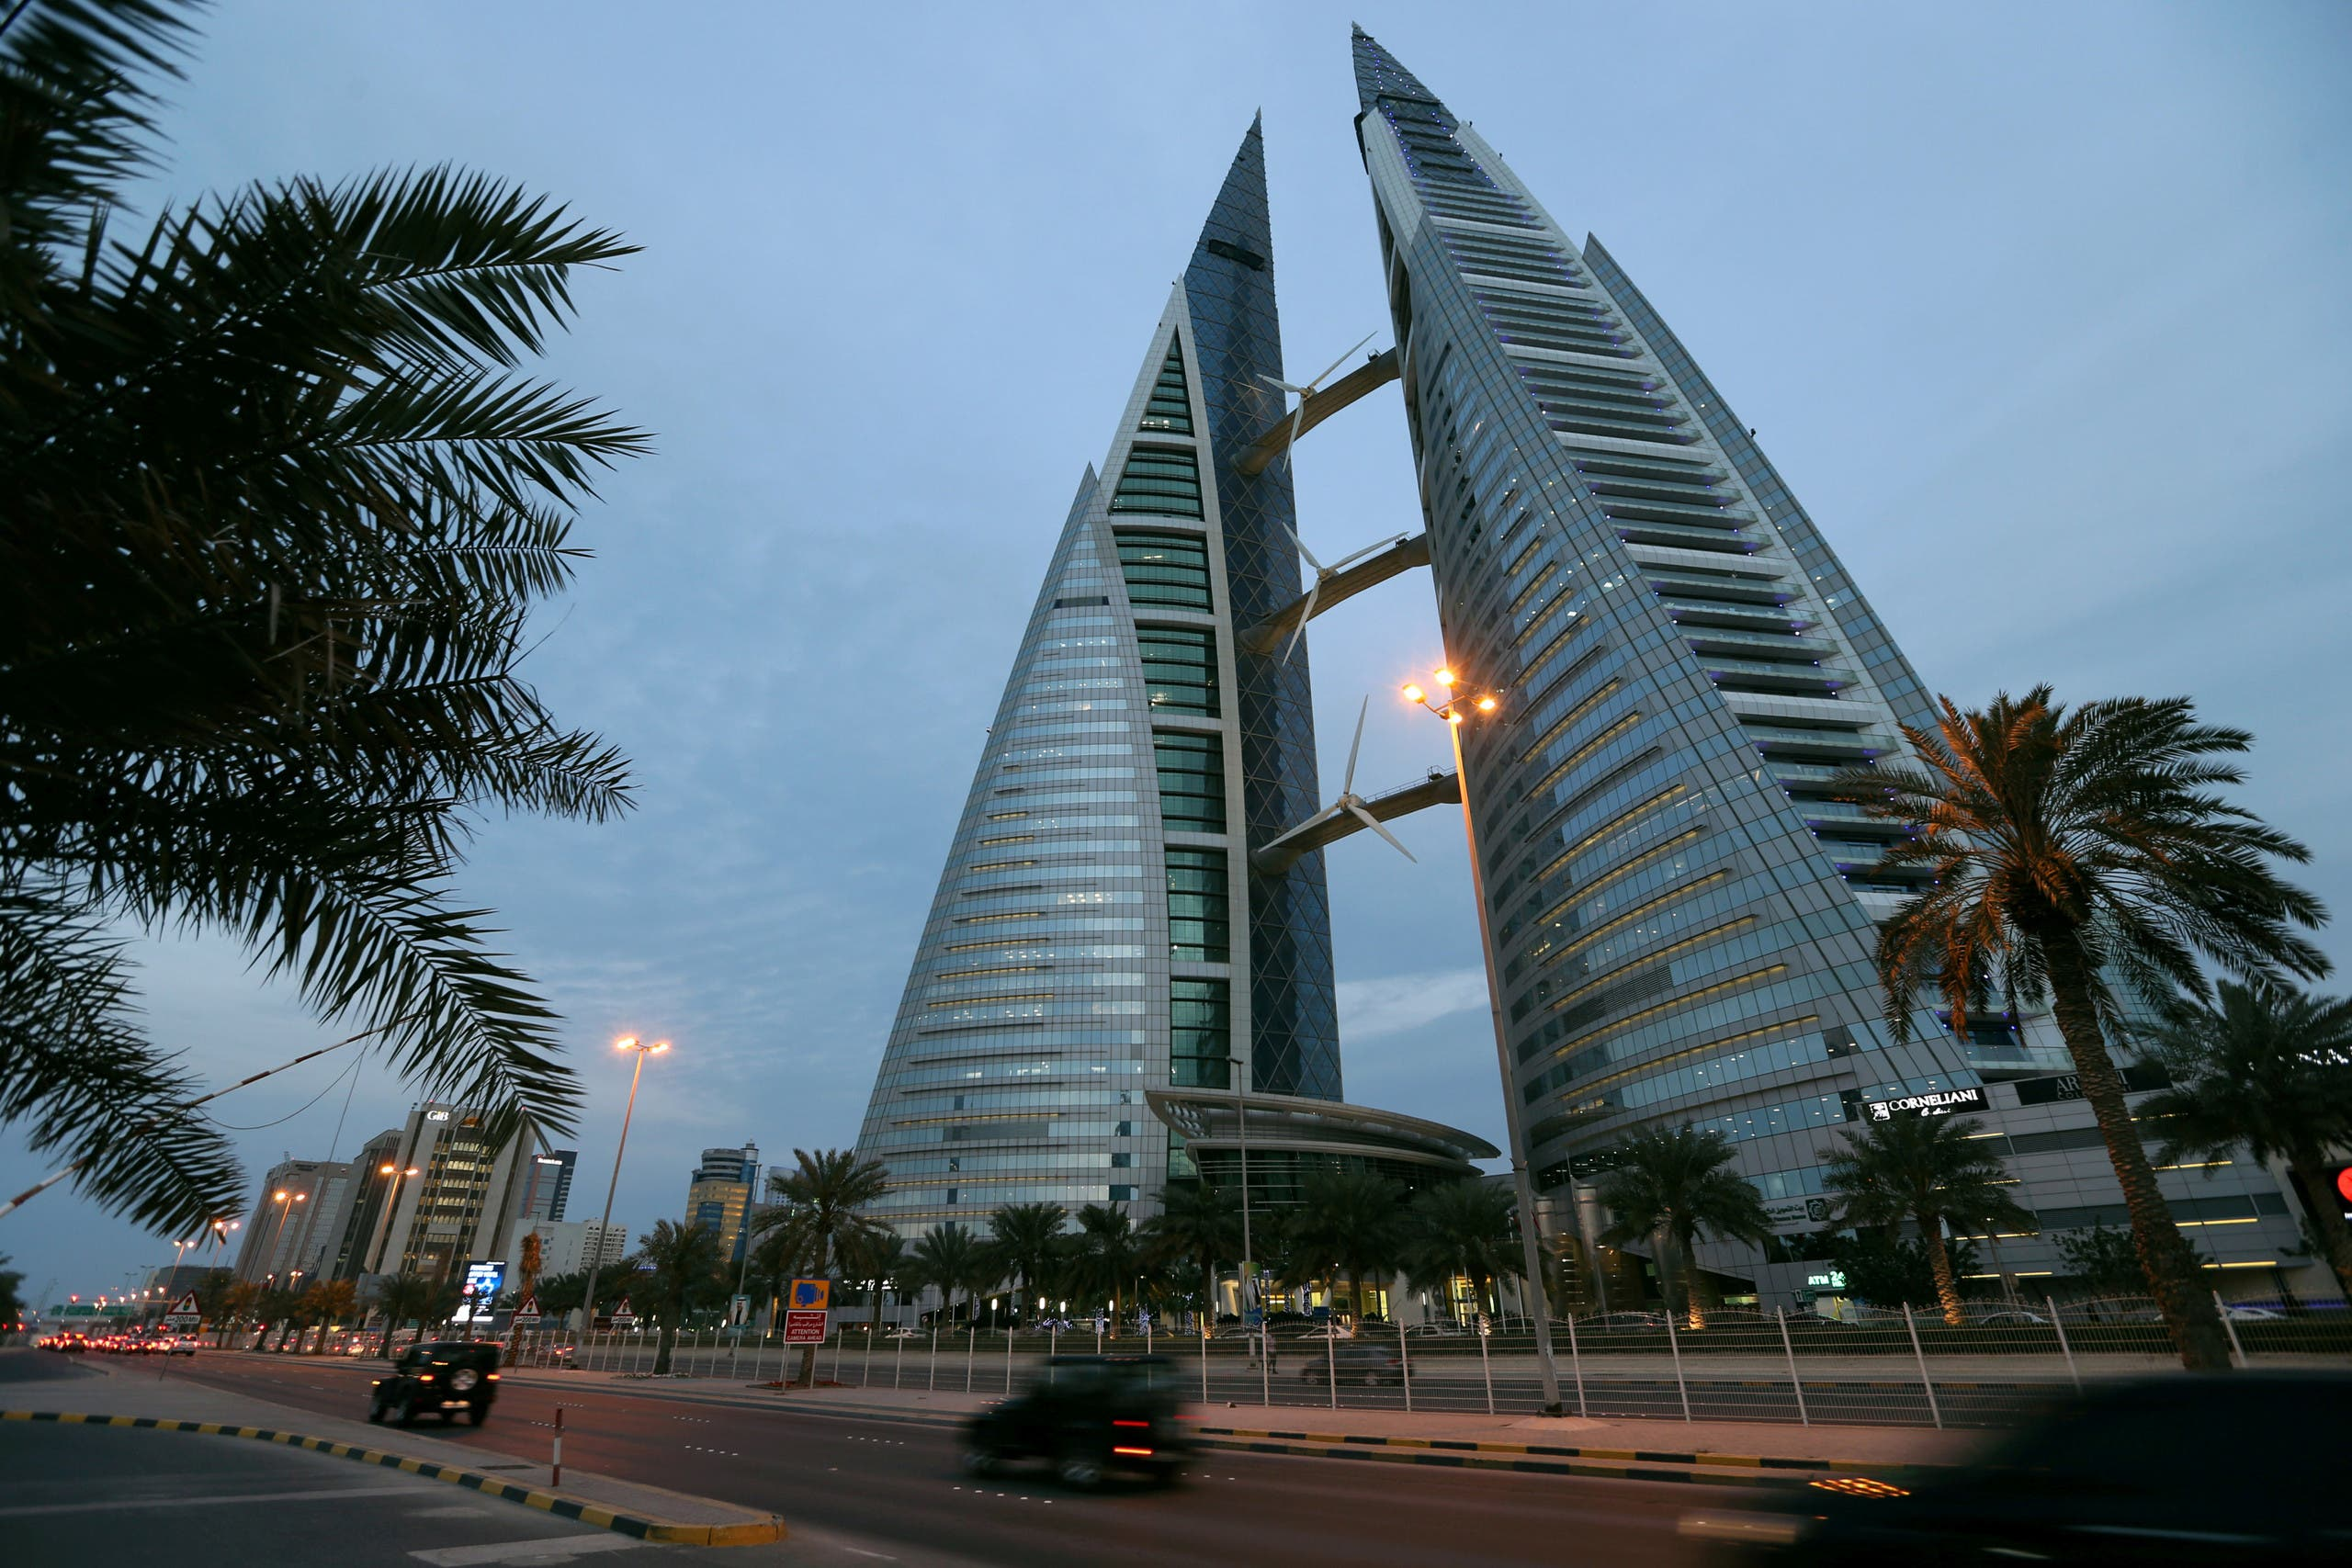 The Bahrain World Trade Center in Manama on February 21, 2019. (Reuters)